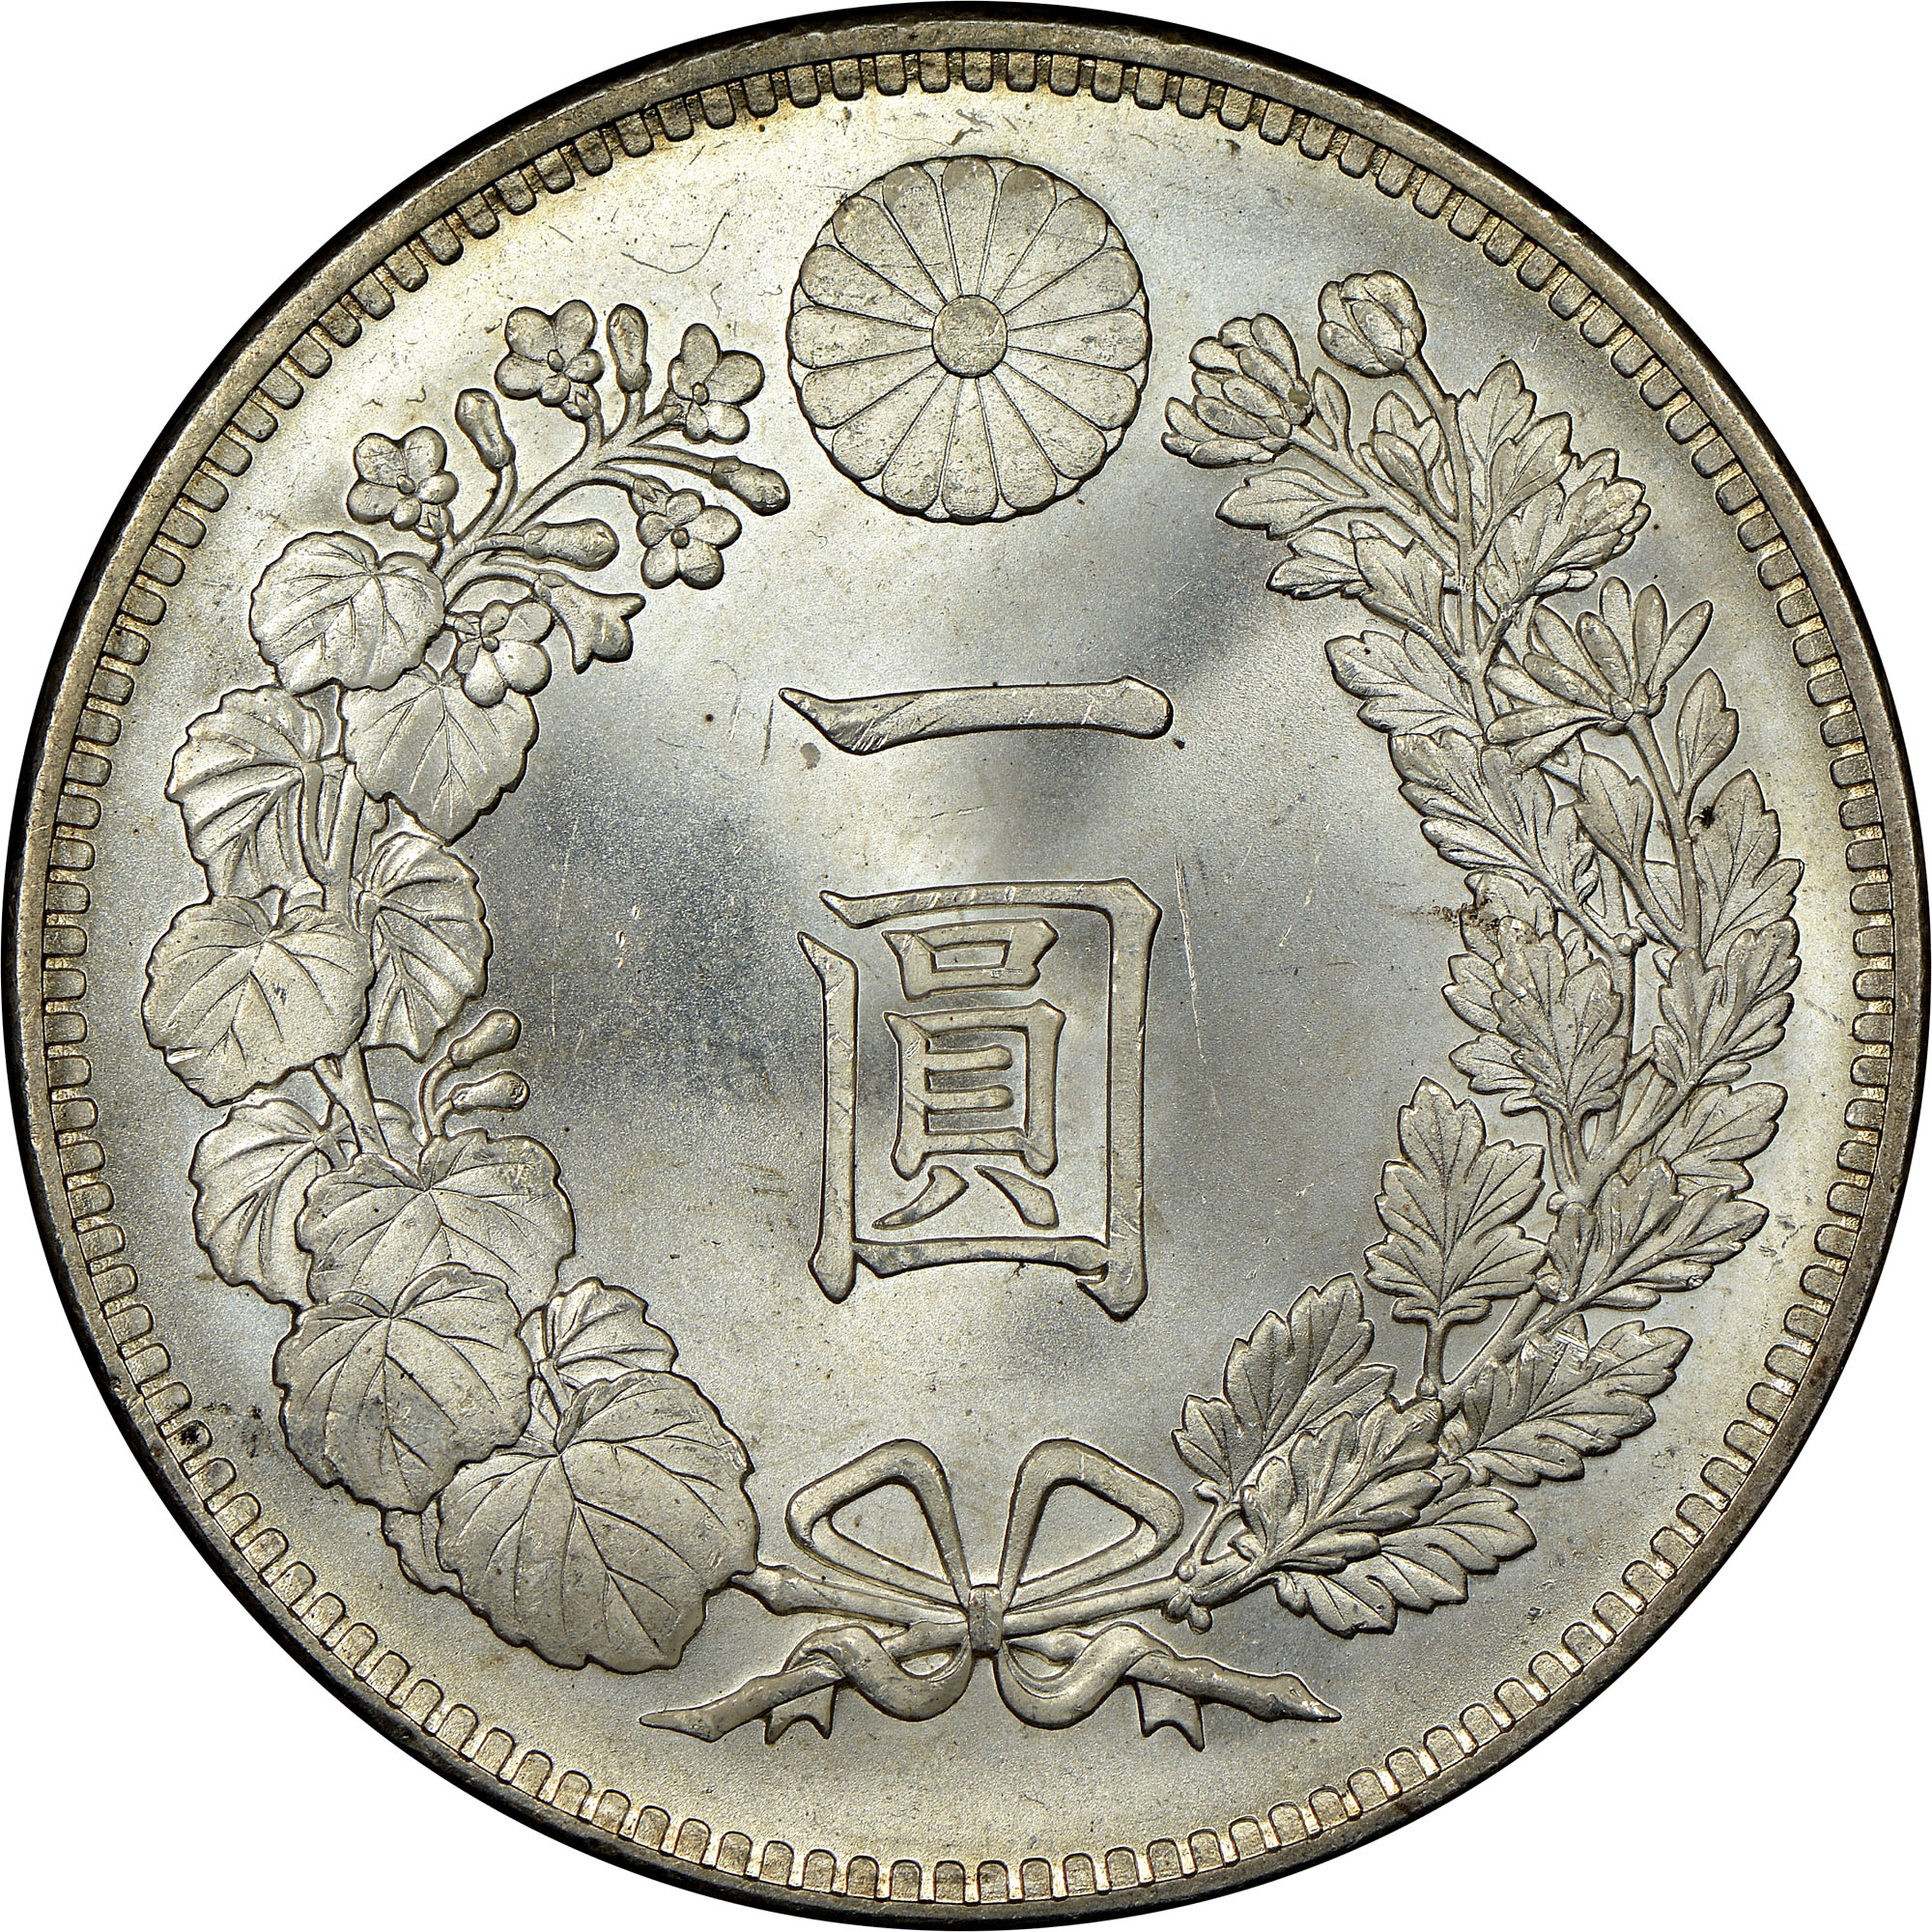 Vnt coin guide japan - Bar du coin st-jerome quote